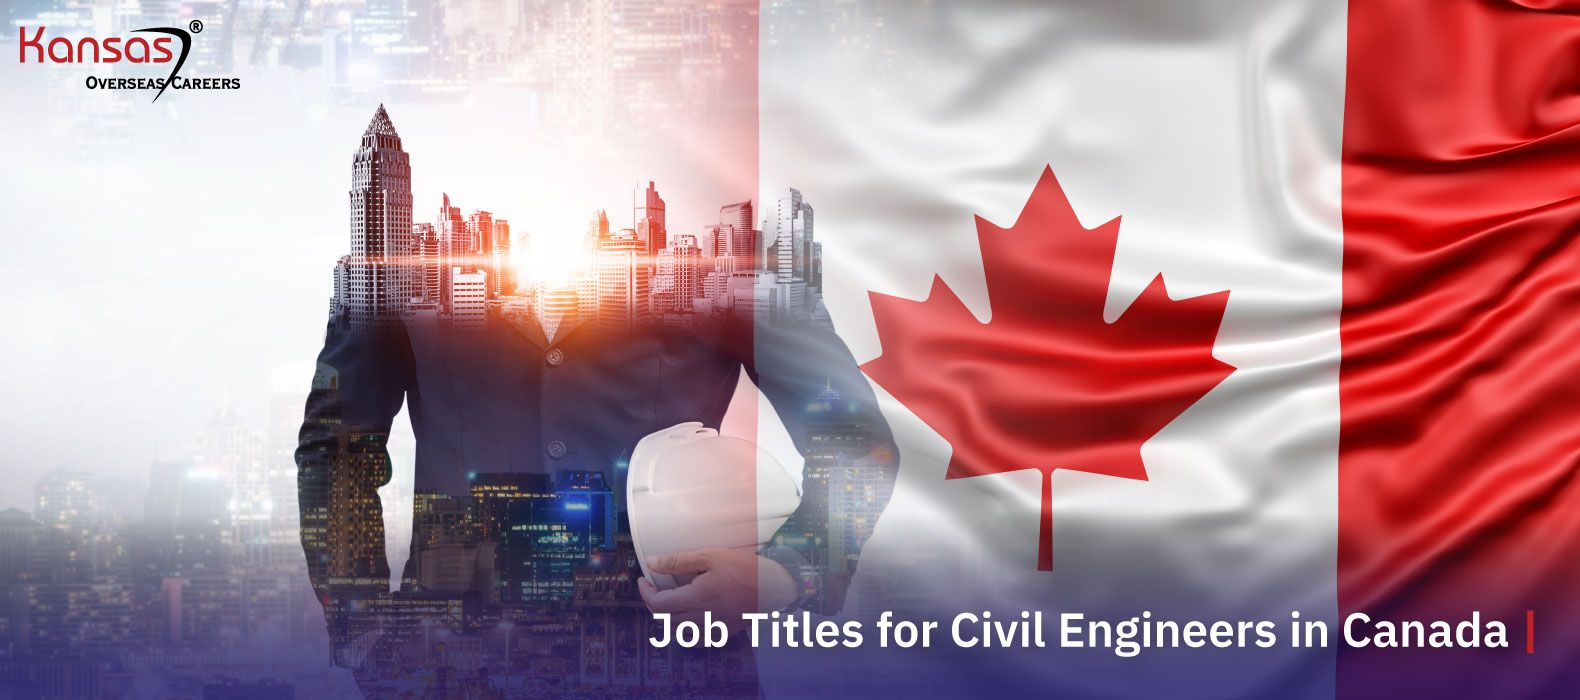 Job-Titles-for-Civil-Engineers-in-Canada